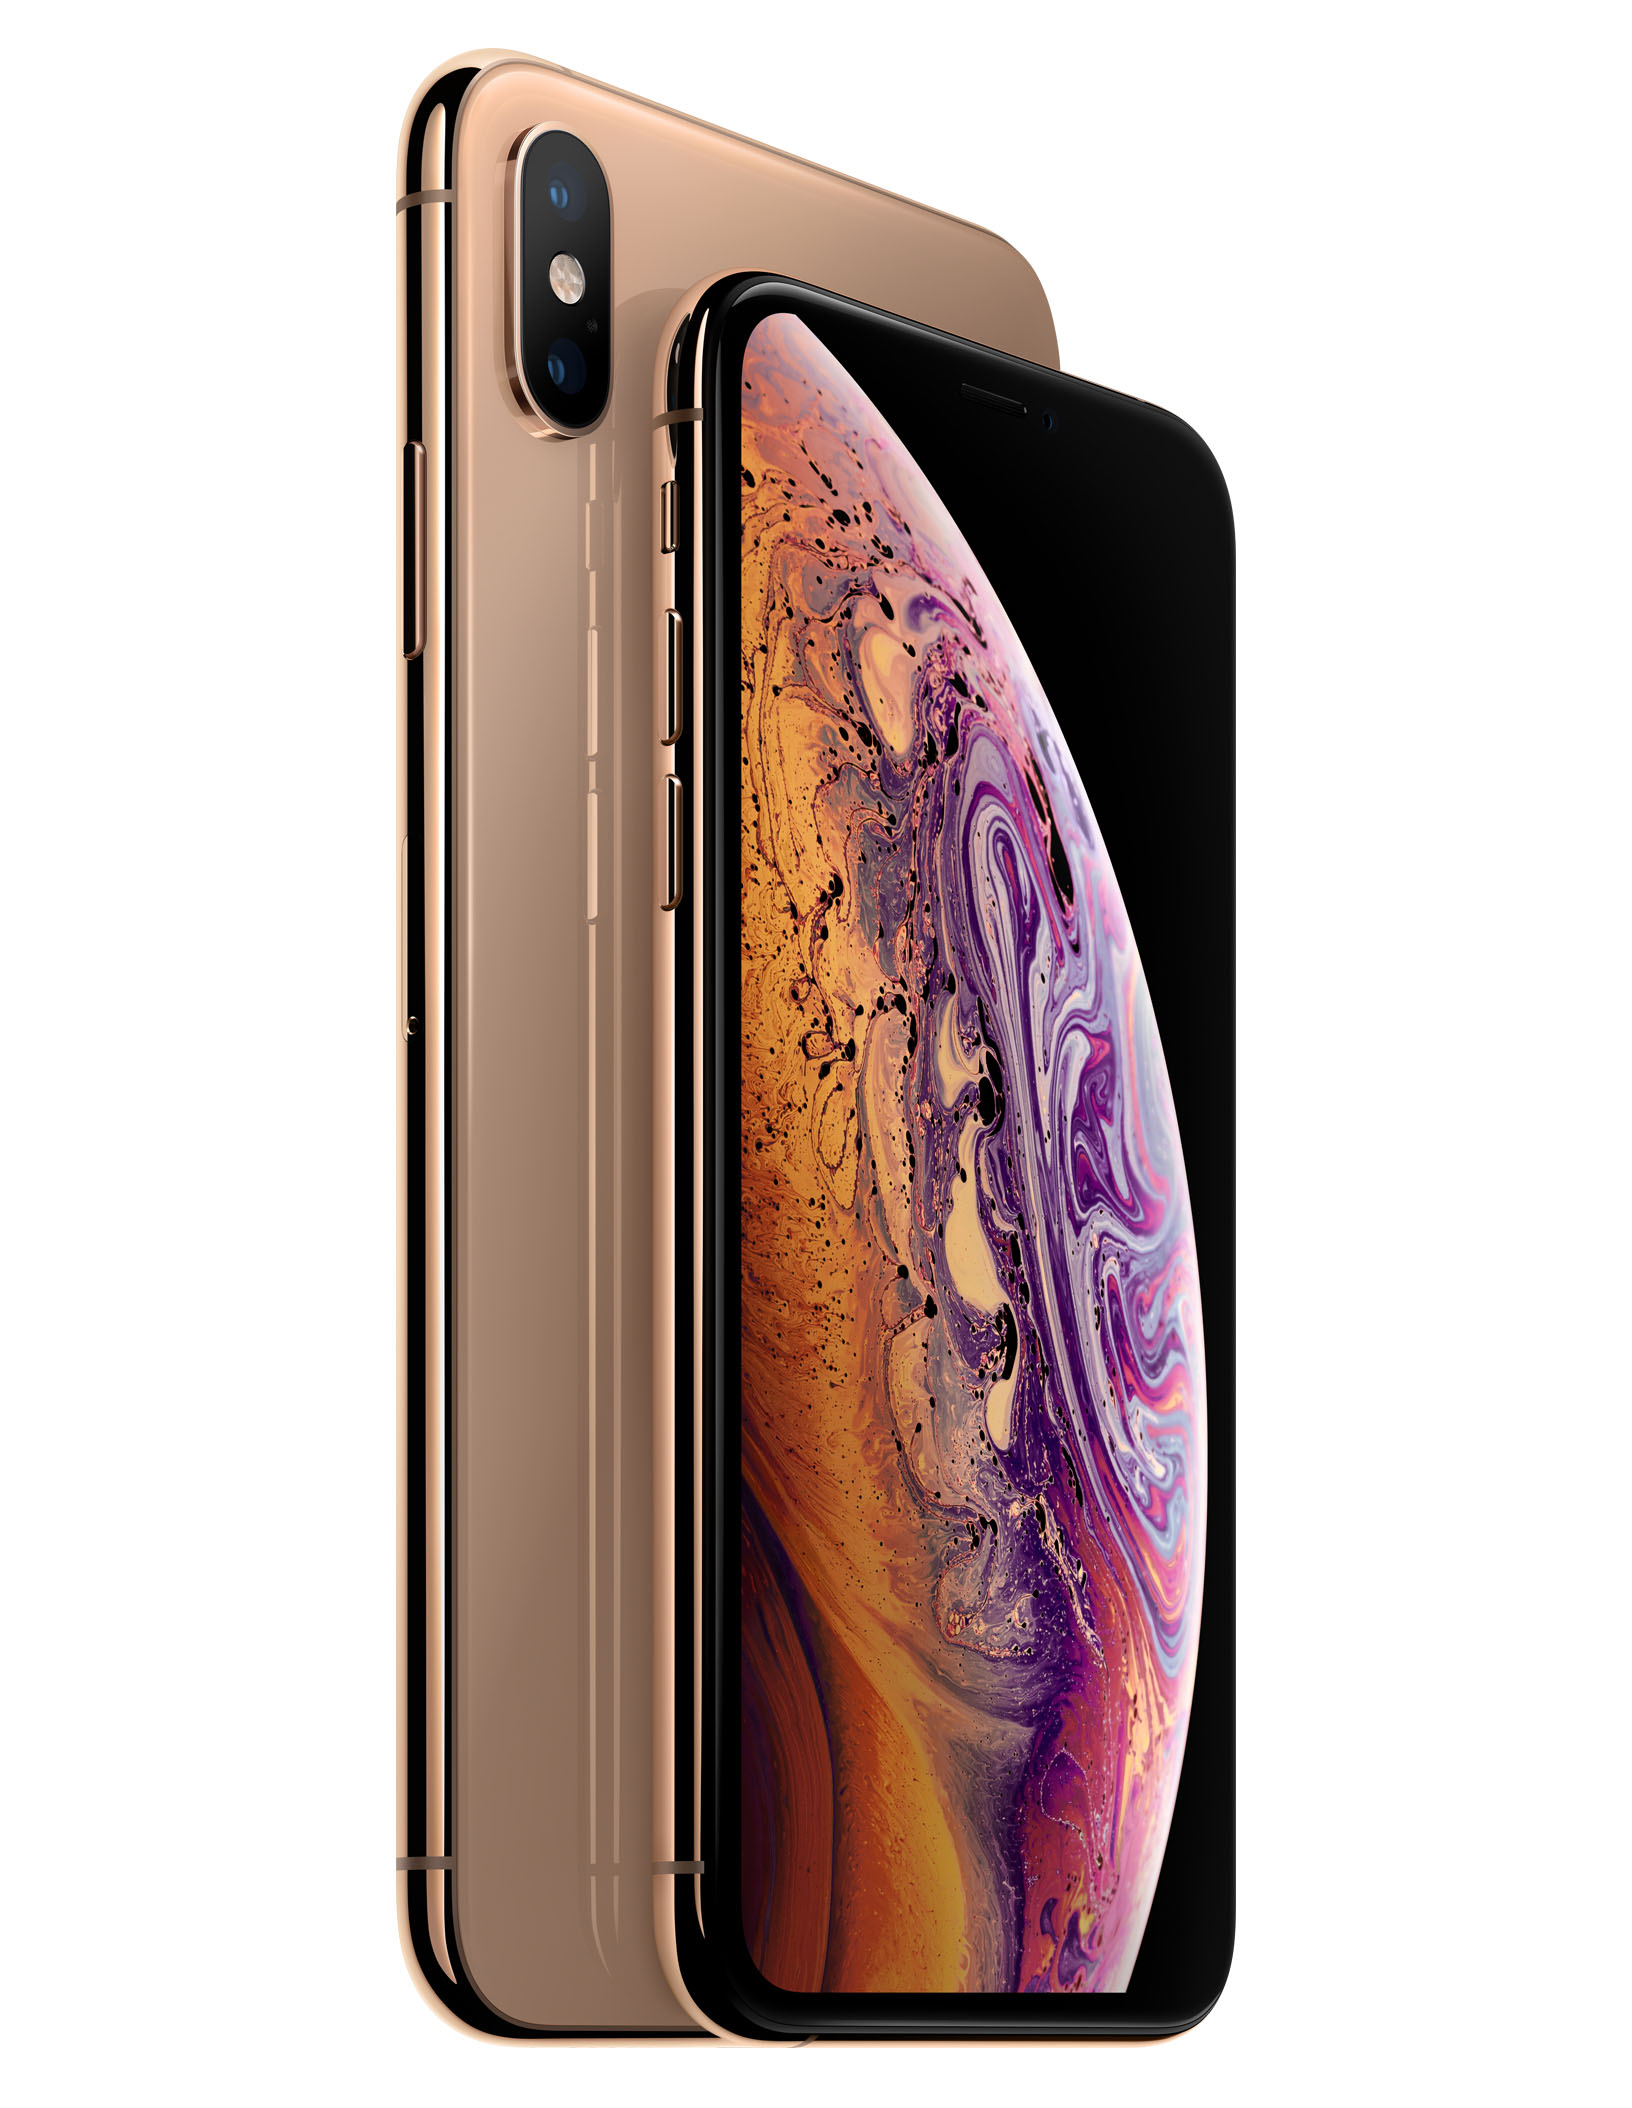 https://www.macfreak.nl/modules/news/images/zArt.Apple-iPhone-Xs-combo-gold-09122018-white-bkg.jpg